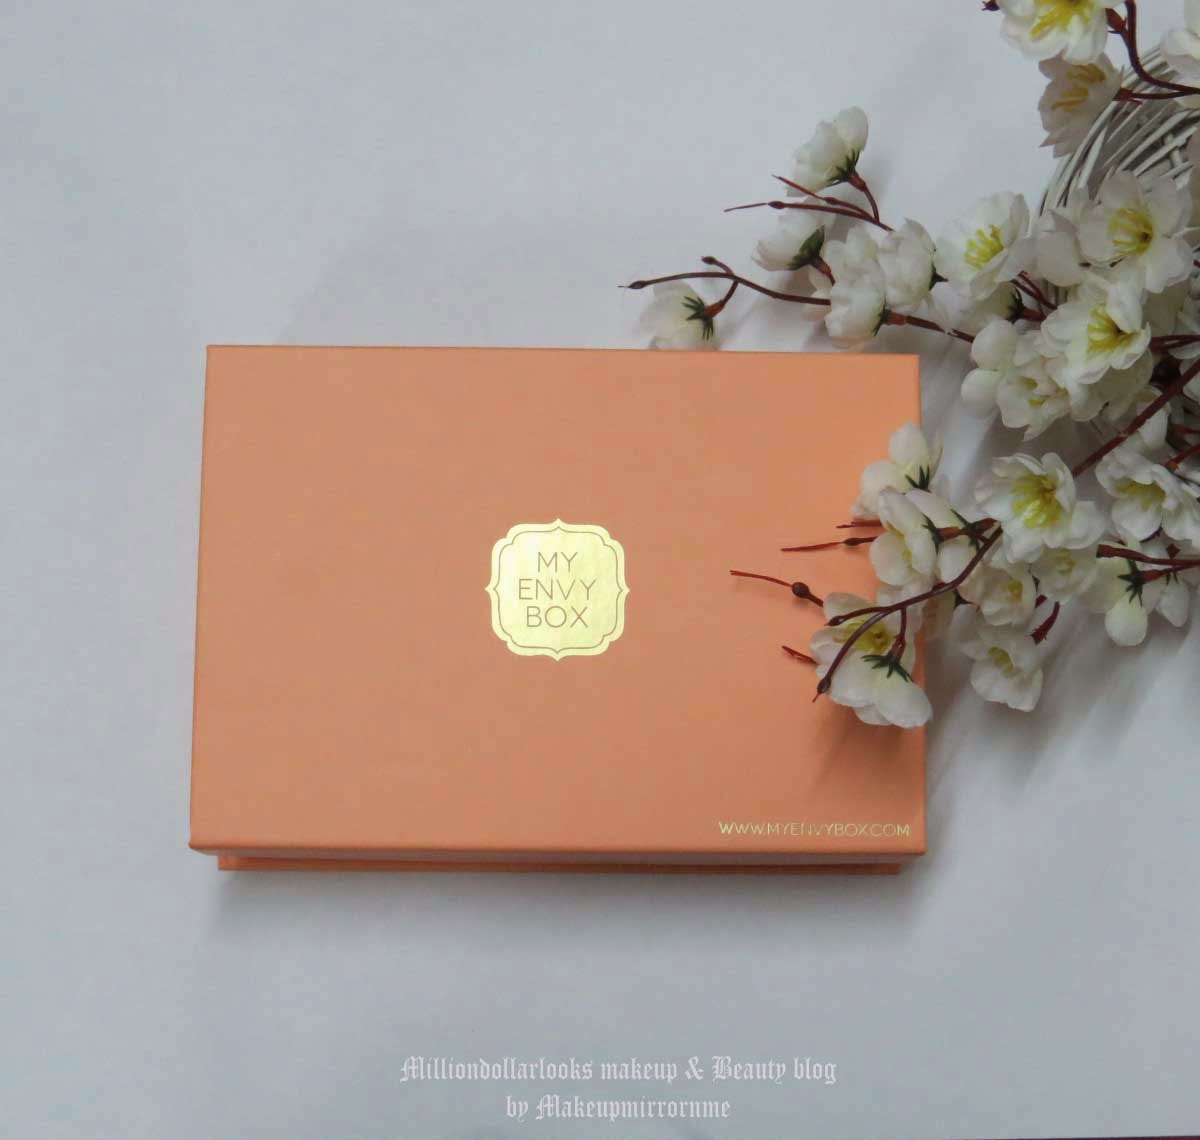 My Envy Box April Edition Unboxing, Review, Pictures & Price, My enxy box review, My envy box april 2015 review, Beauty box available in India, Best beauty box  subsription available in India, Indian beauty blogger, Indian makeup and beauty blog, Indian makeup blogger